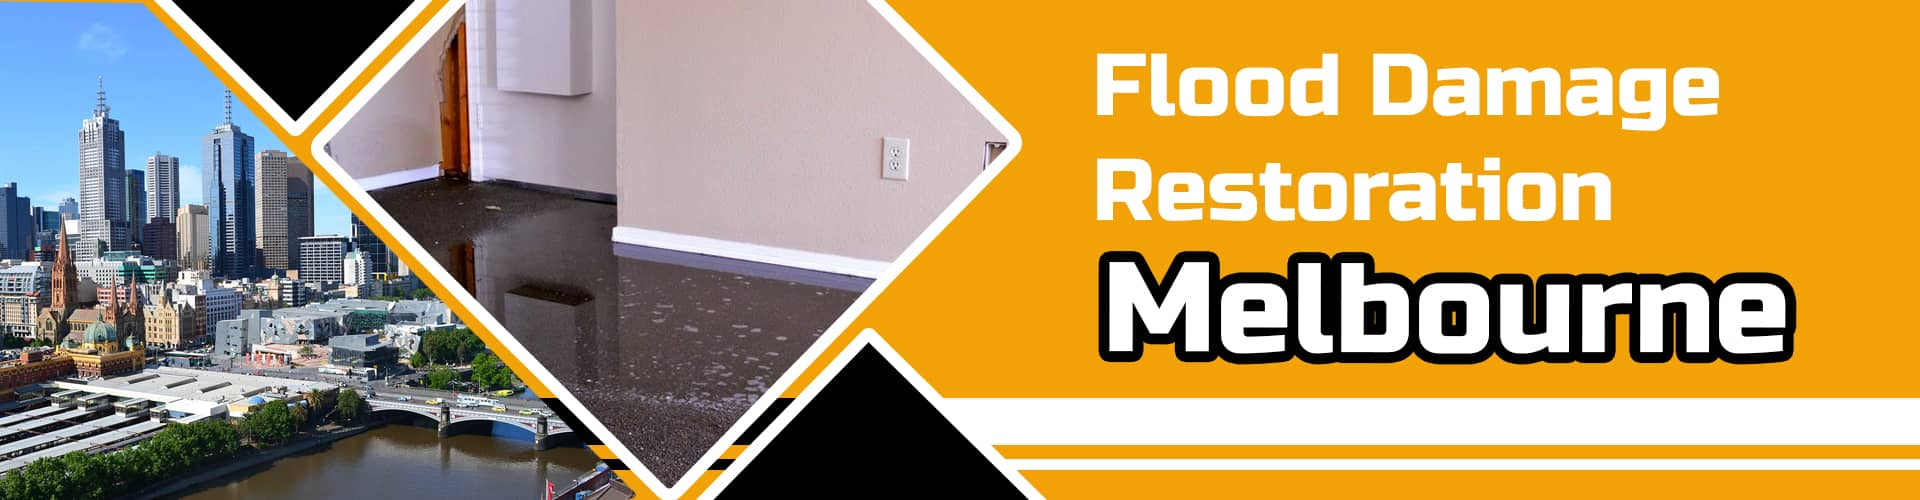 Carpet Water Damage Cleanup Melbourne